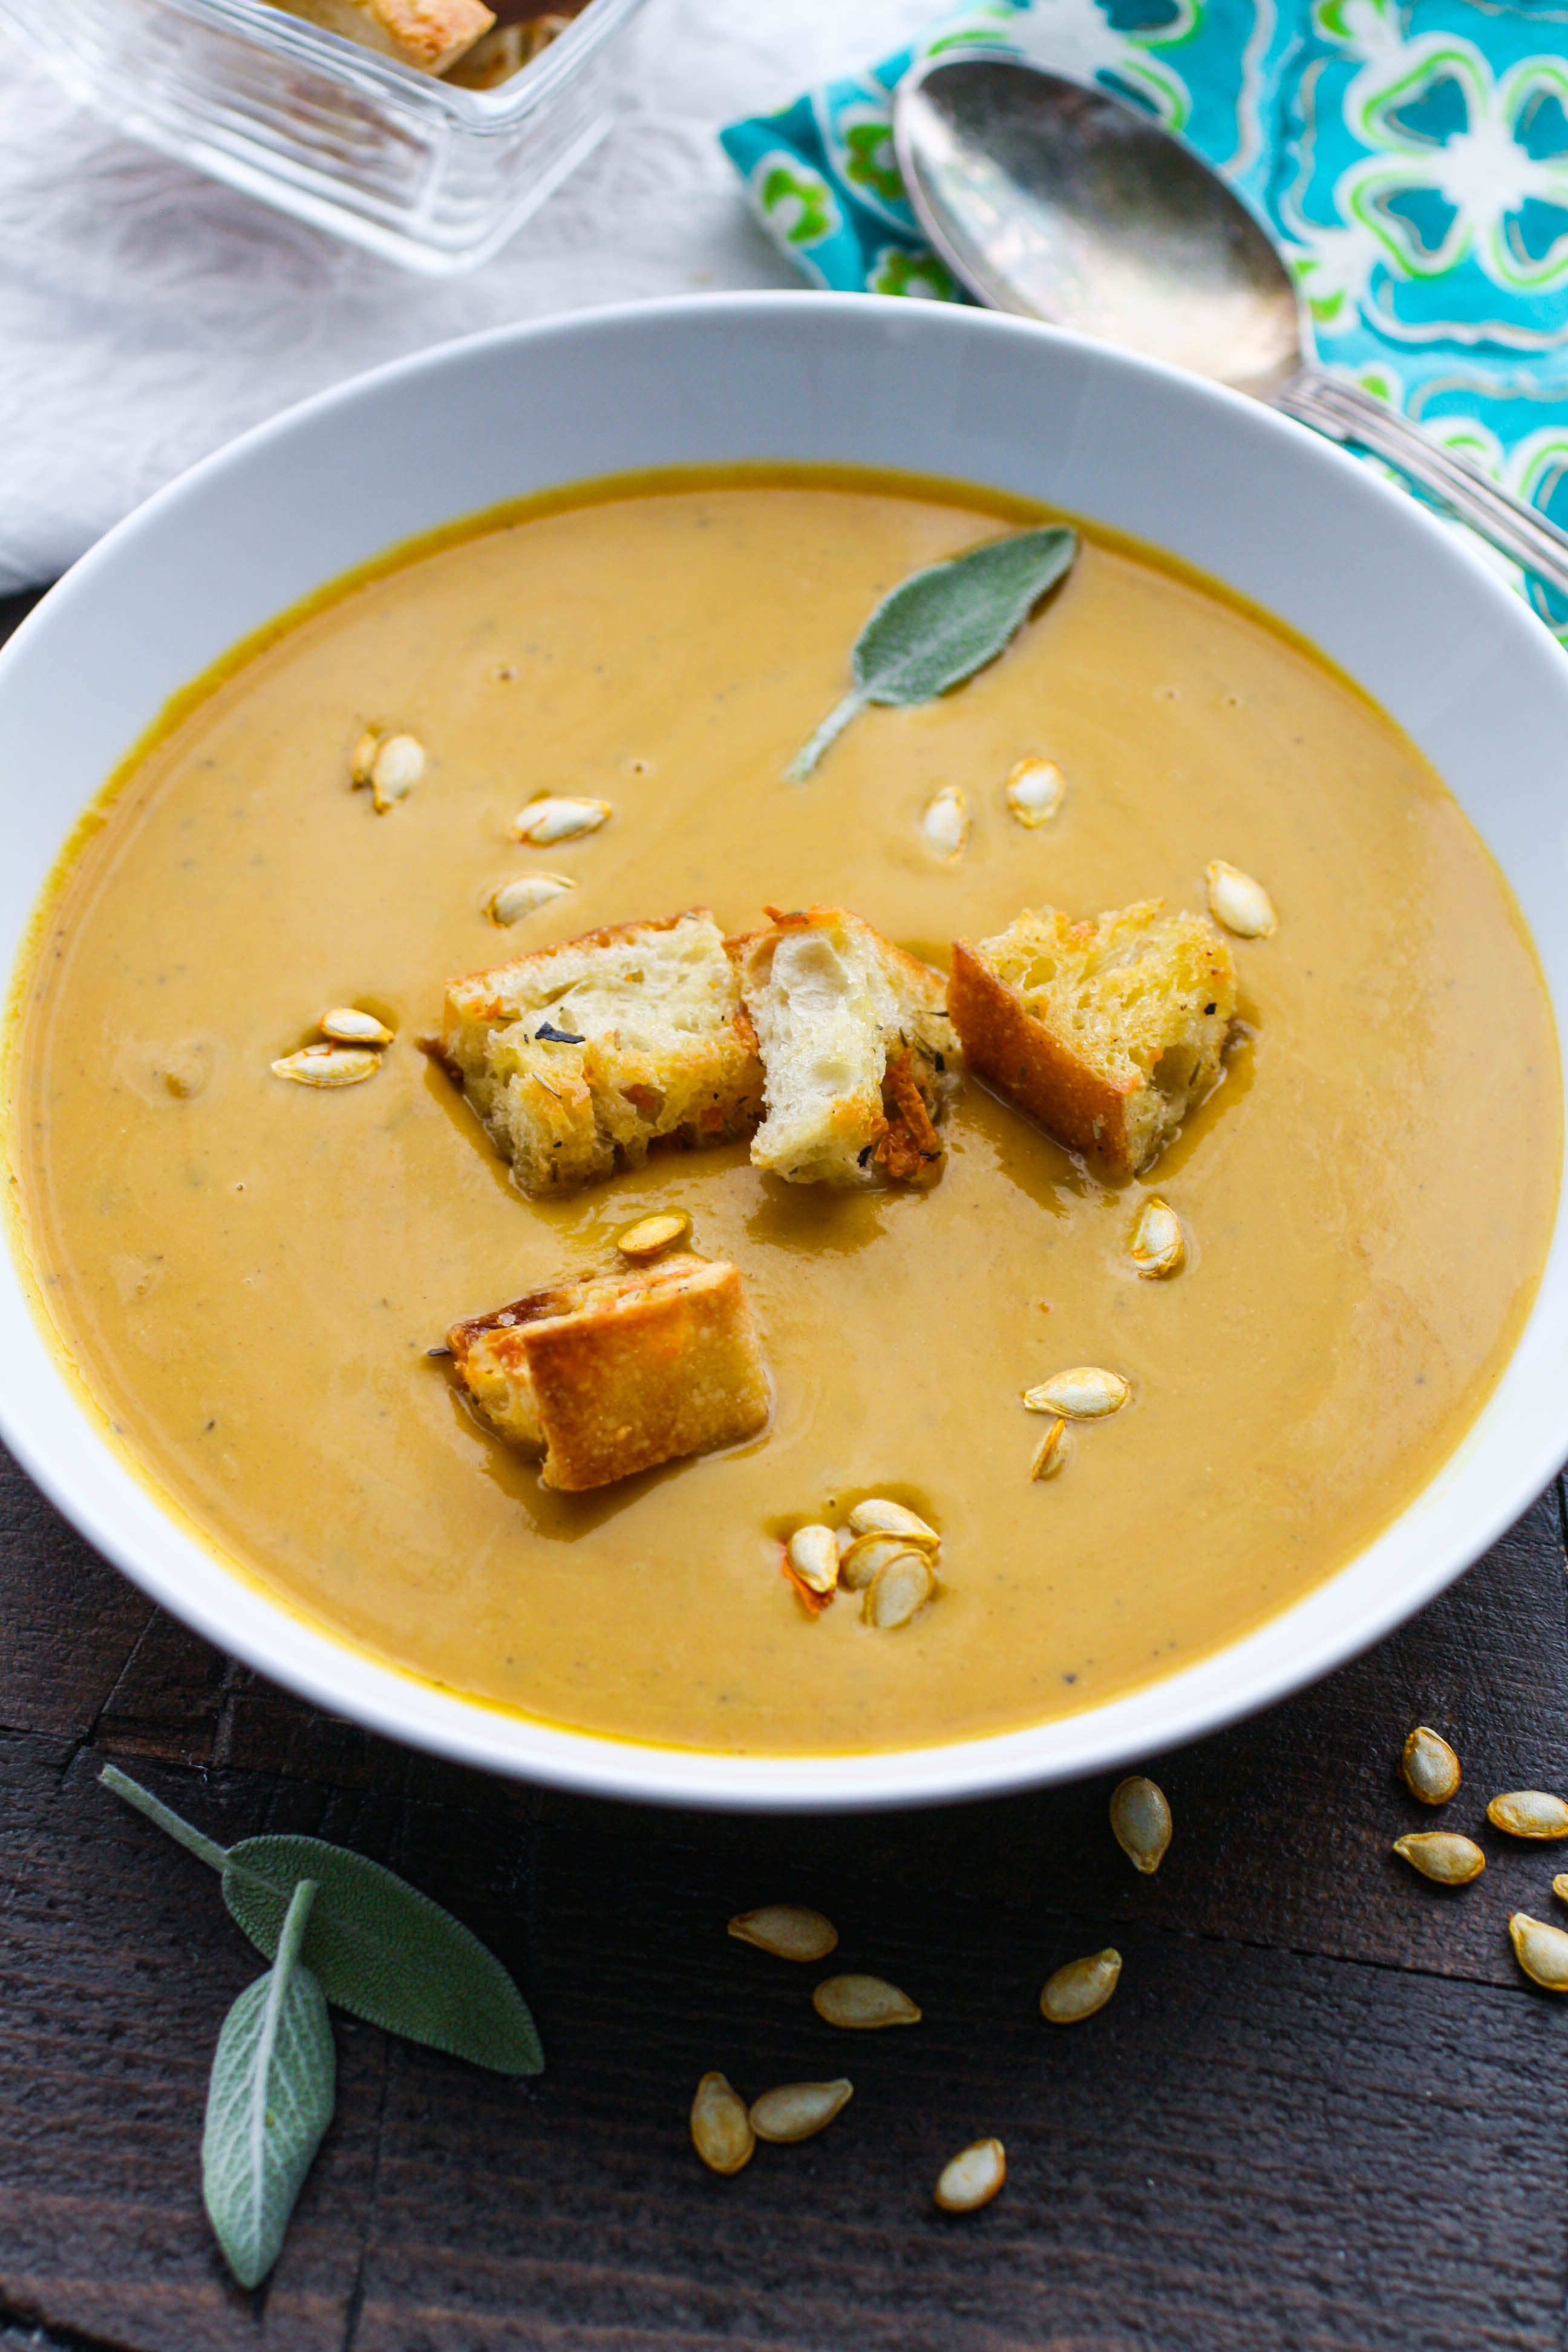 Easy, Creamy Butternut Squash Soup is one you'll want to serve all winter. The colors and flavors of this soup are lovely!